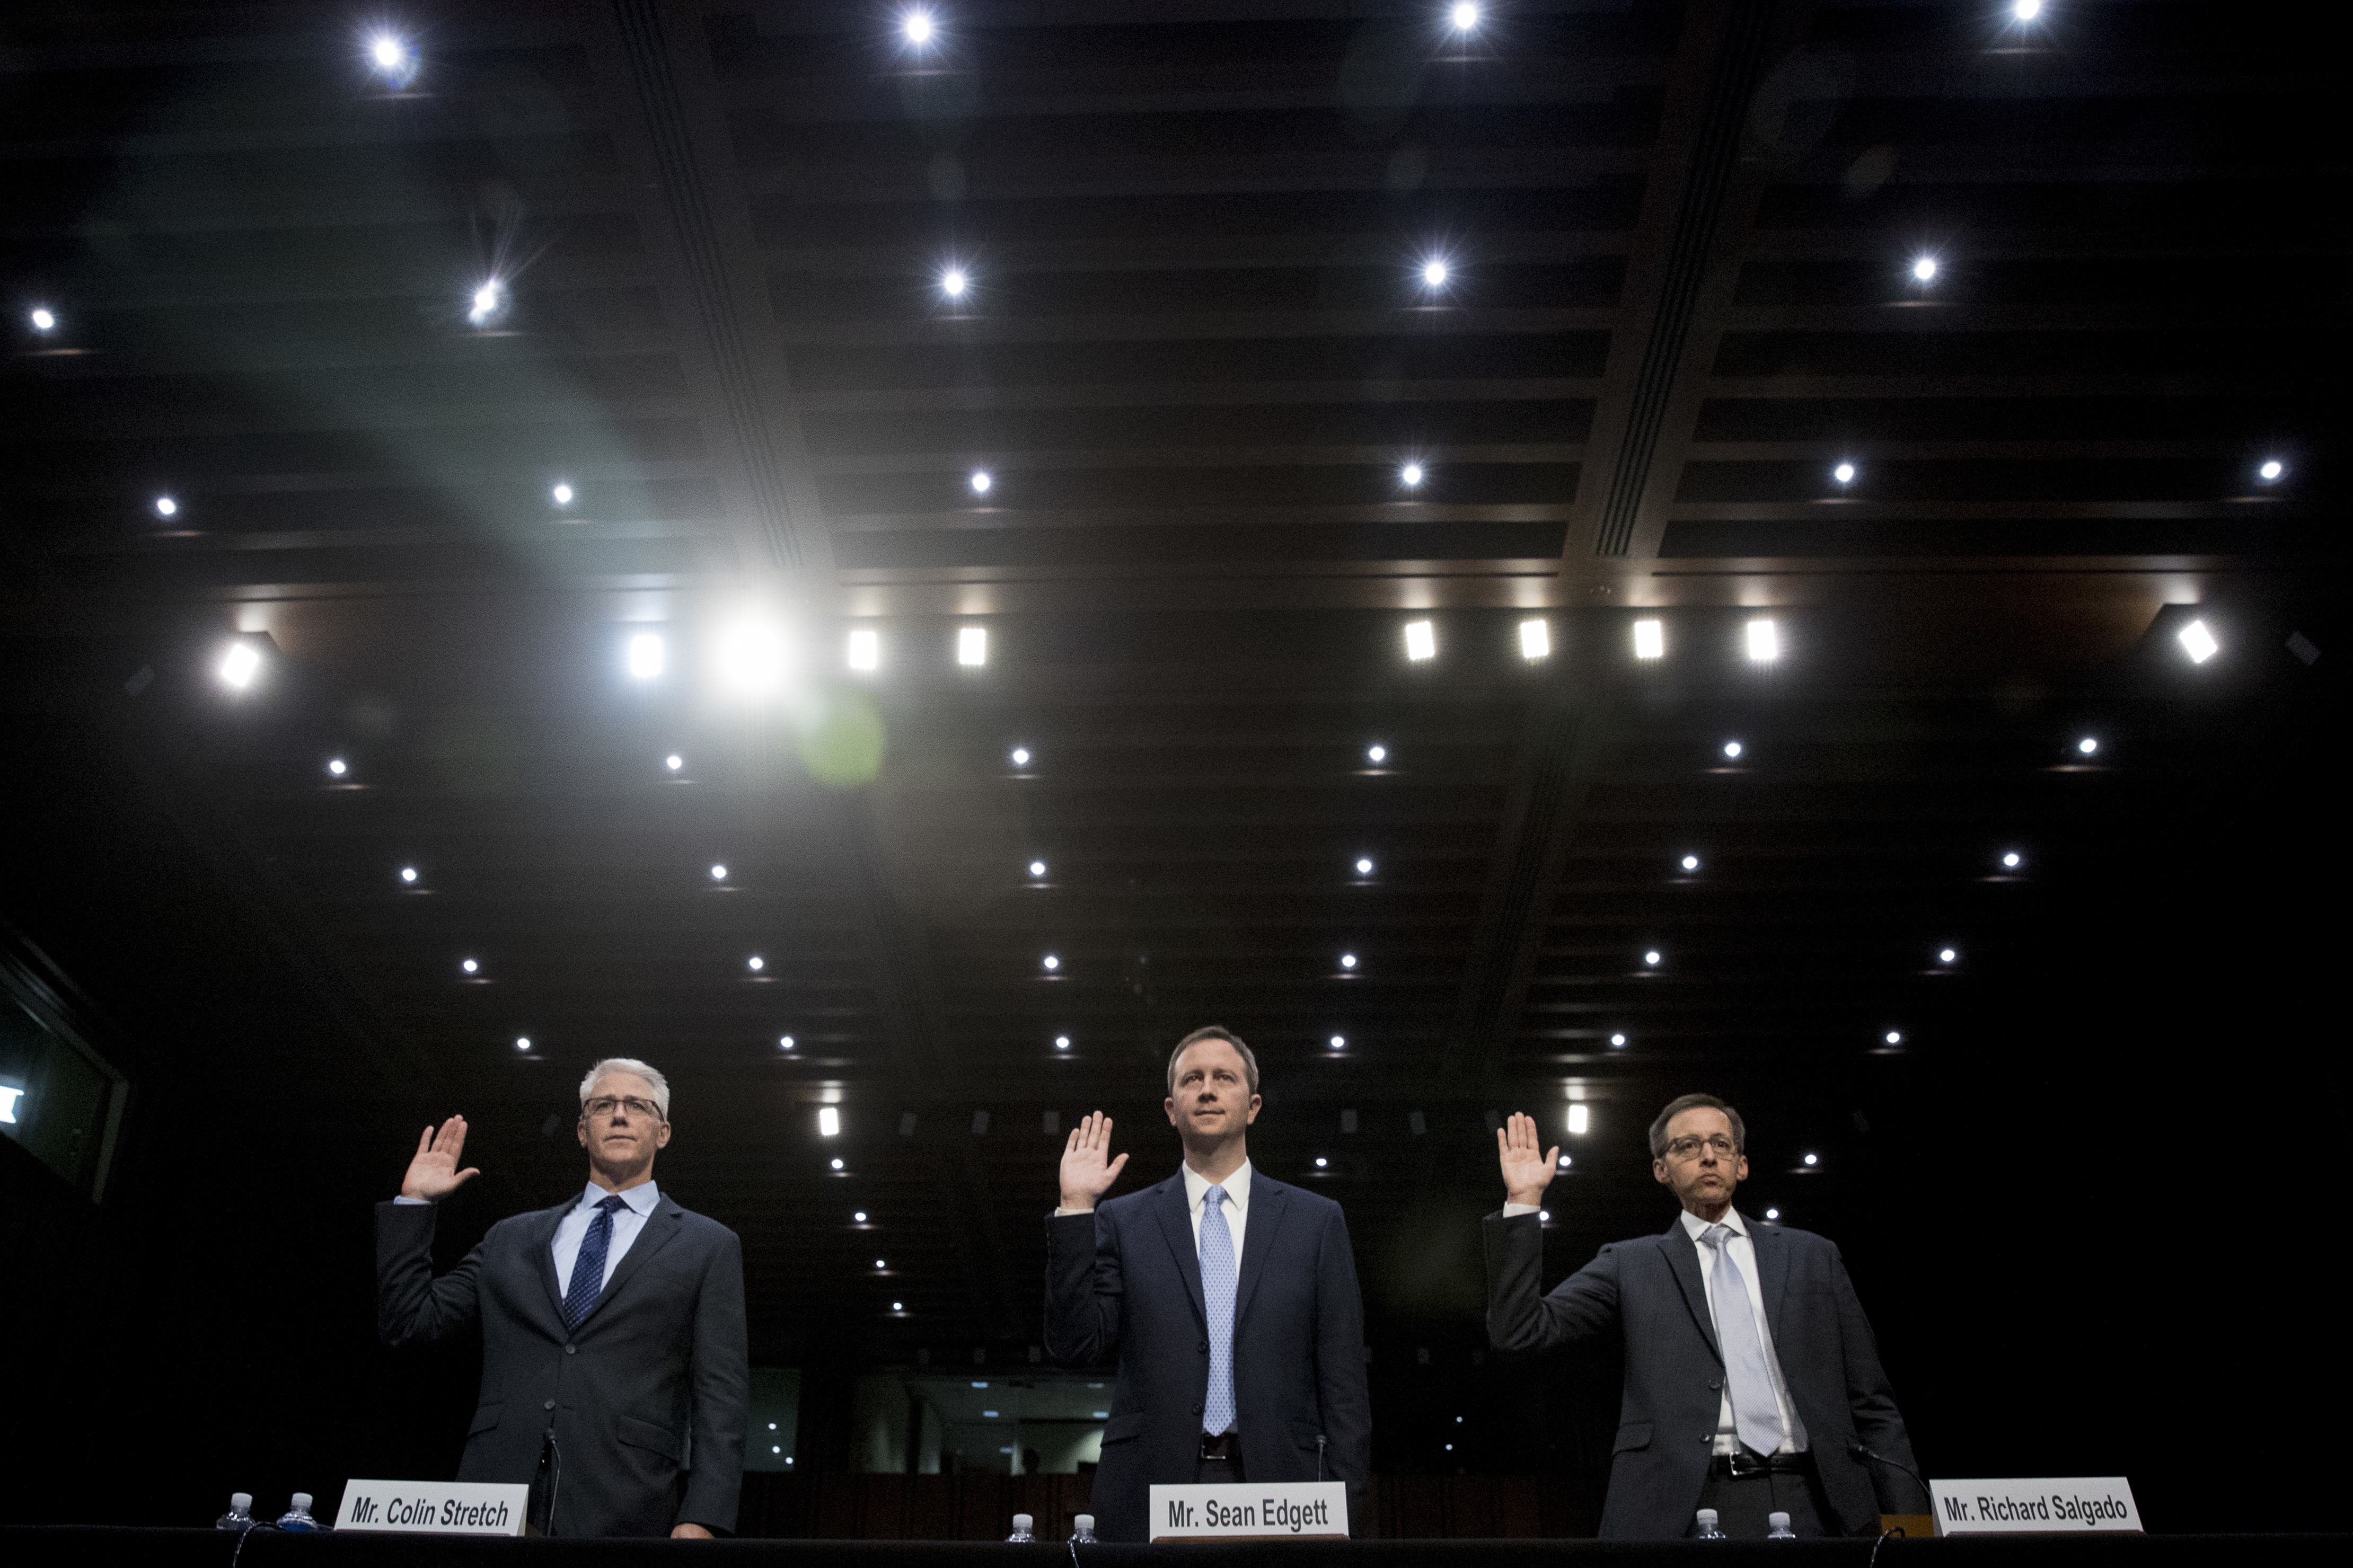 From left, Facebook's General Counsel Colin Stretch, Twitter's Acting General Counsel Sean Edgett, and Google's Law Enforcement and Information Security Director Richard Salgado, are sworn in for a Senate Committee on the Judiciary, Subcommittee on Crime and Terrorism hearing on Capitol Hill in Washington, Tuesday, Oct. 31, 2017, on more signs from tech companies of Russian election activity. (AP Photo/Andrew Harnik)